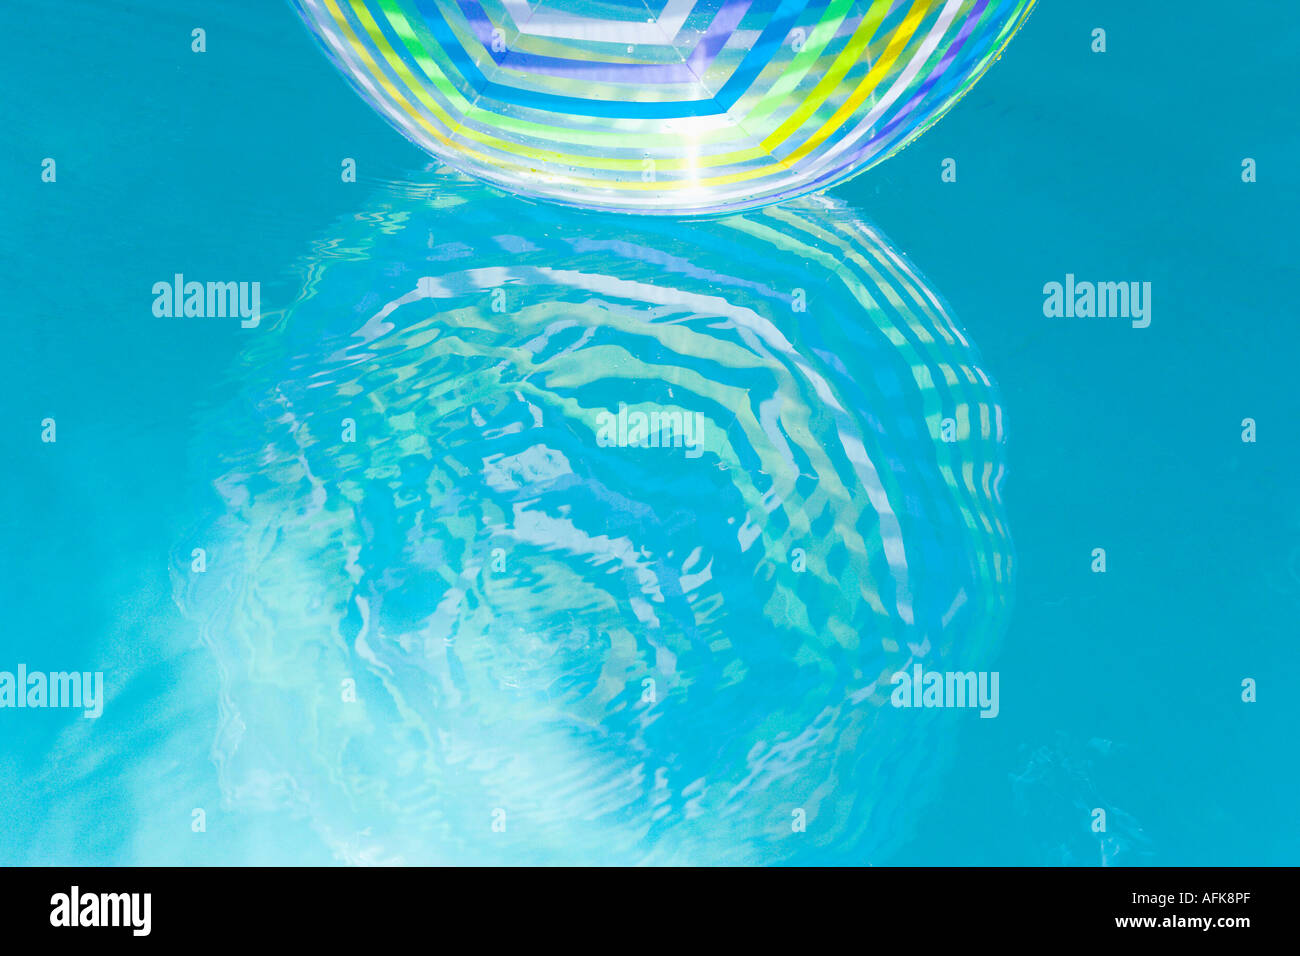 Pool Water With Beach Ball beach ball reflection in swimming pool water stock photo, royalty